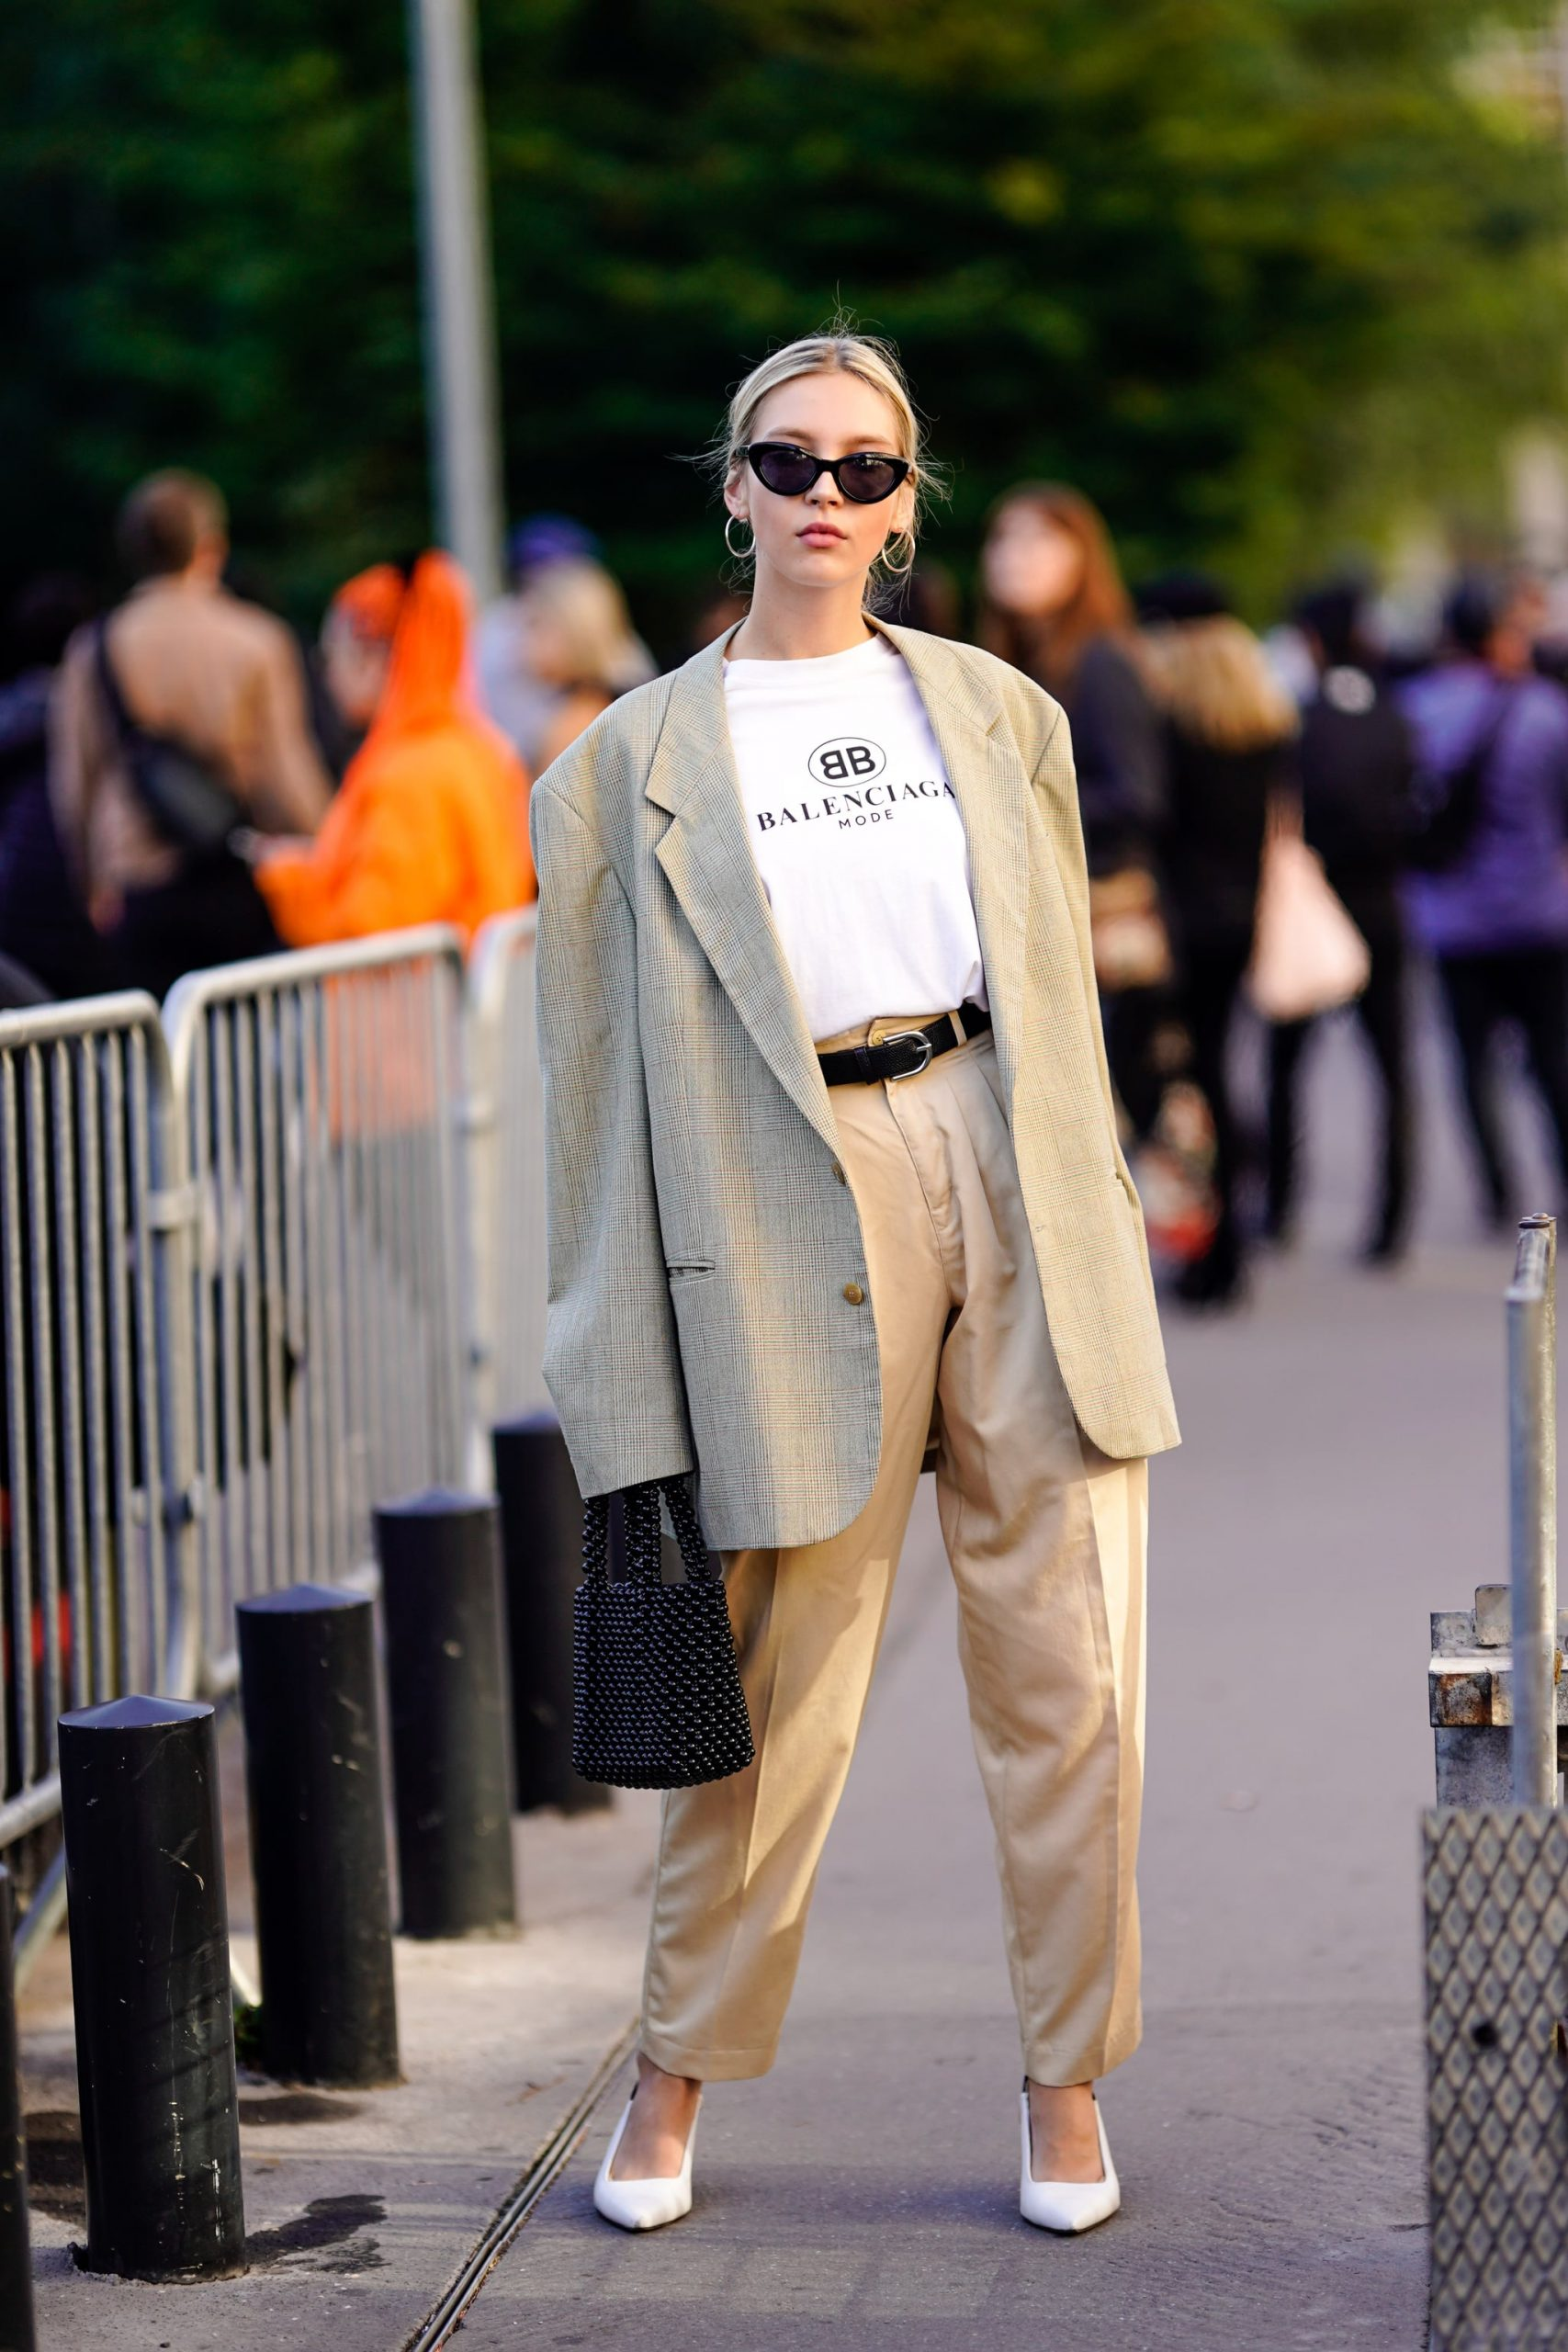 The Combination Of A Basic Tee And An Oversized Suit